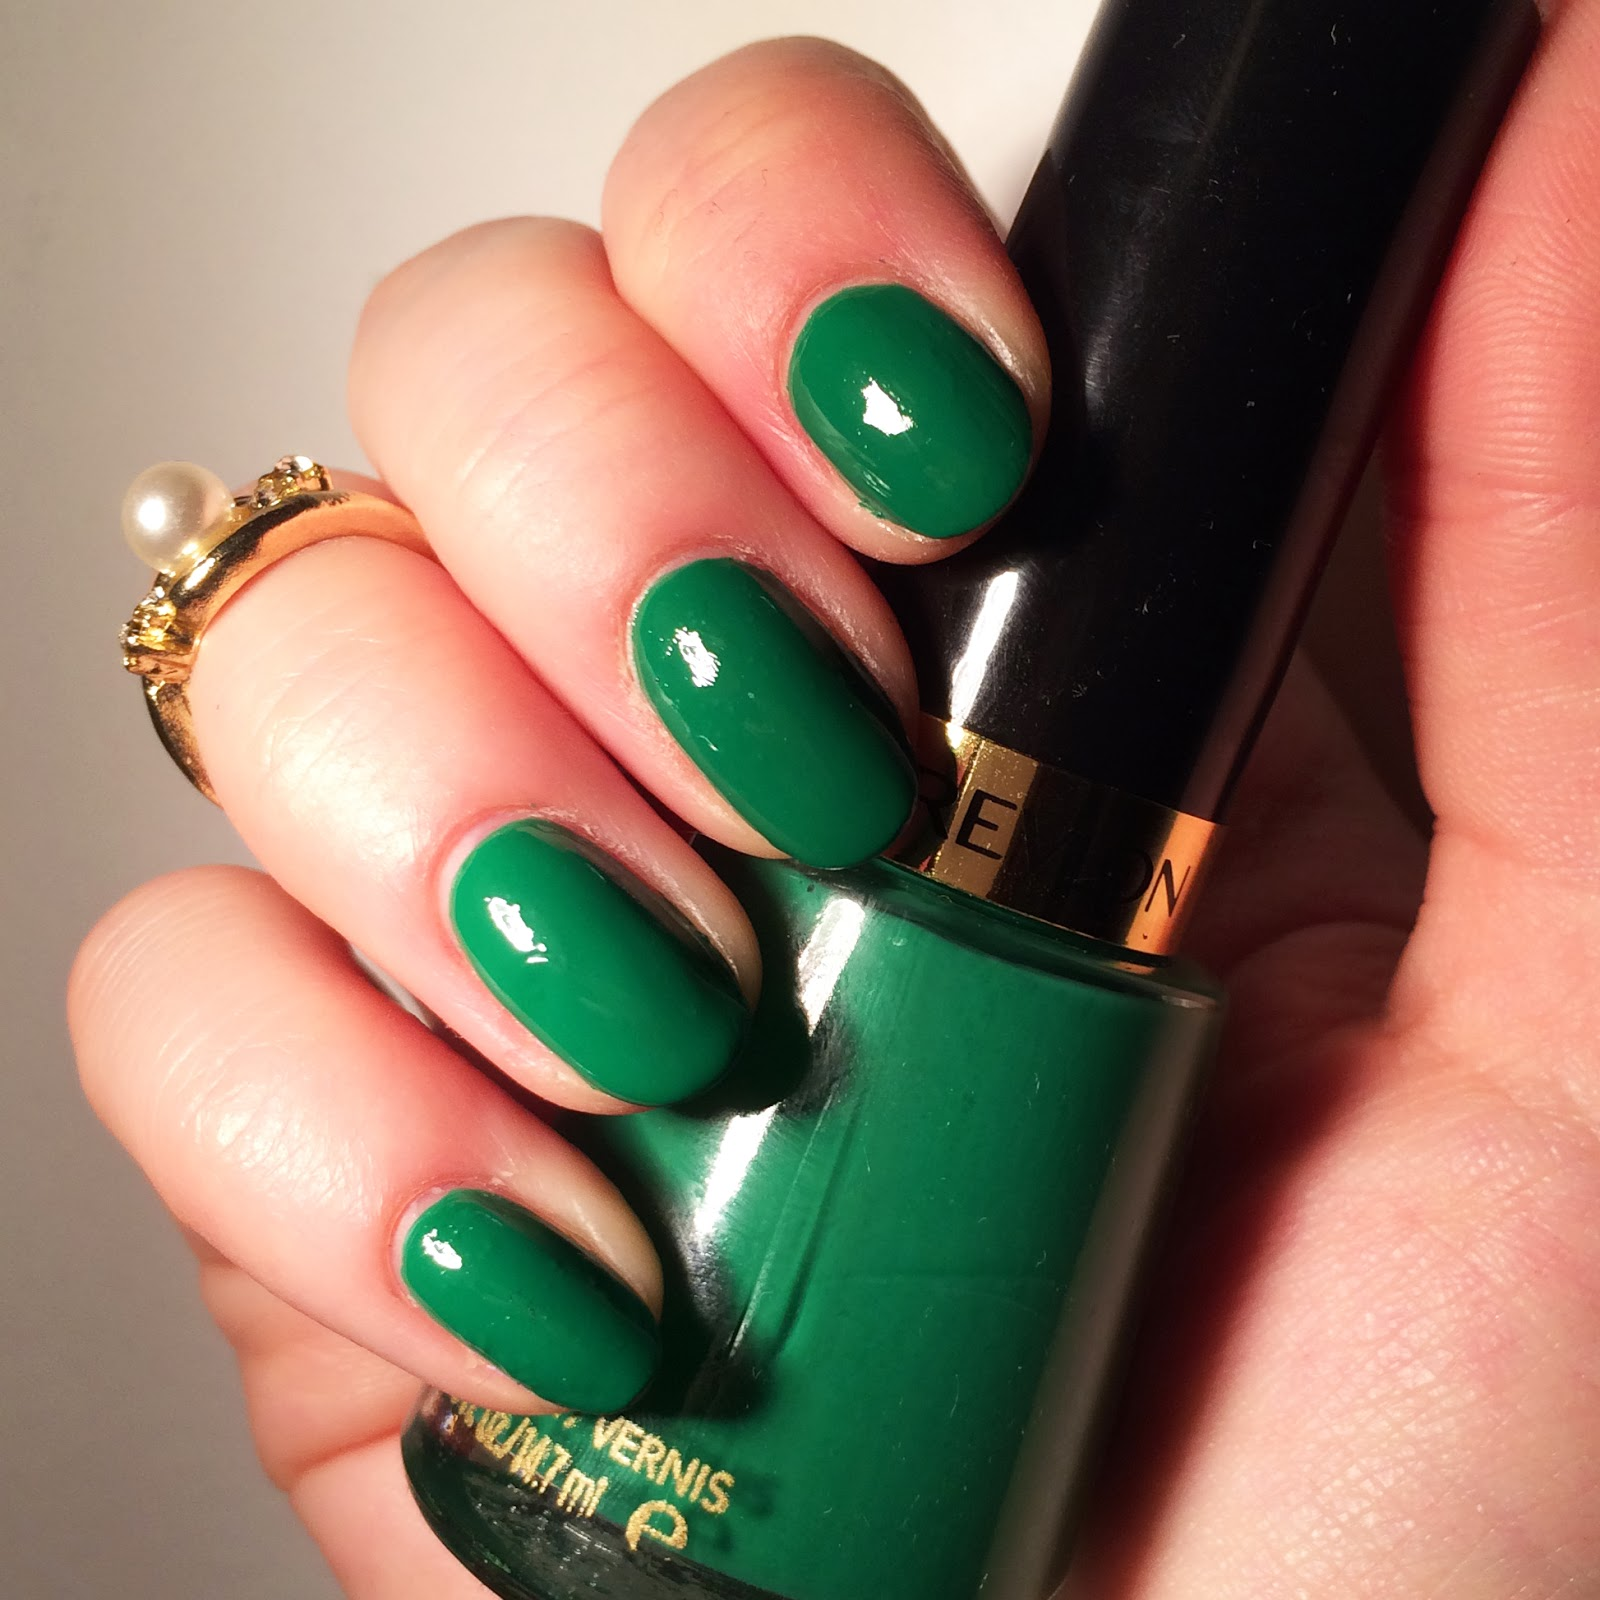 Green Glitter Nail Polish Uk: Revlon Nail Enamel~*GOLD GODDESS*~Glitter Polish Varnish